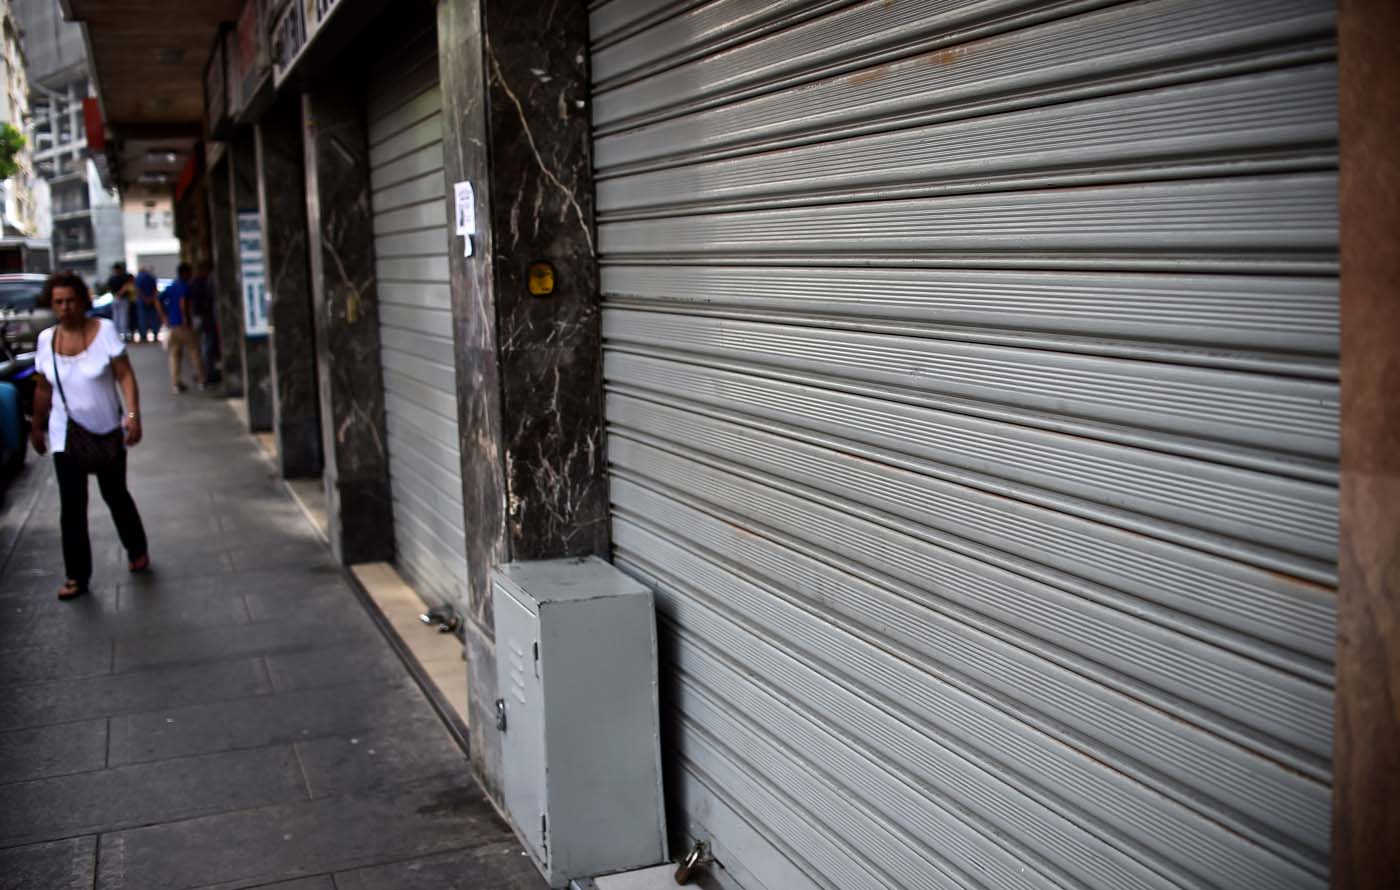 A woman walks by a closed store in Caracas, on October 28, 2016. Venezuela's opposition sought to pressure President Nicolas Maduro on Friday with a strike, which he threatened to break with army takeovers of paralyzed firms. The strike risks exacerbating the shortages of food and goods gripping the country, but it seemed to be only partially observed on Friday morning. / AFP PHOTO / RONALDO SCHEMIDT